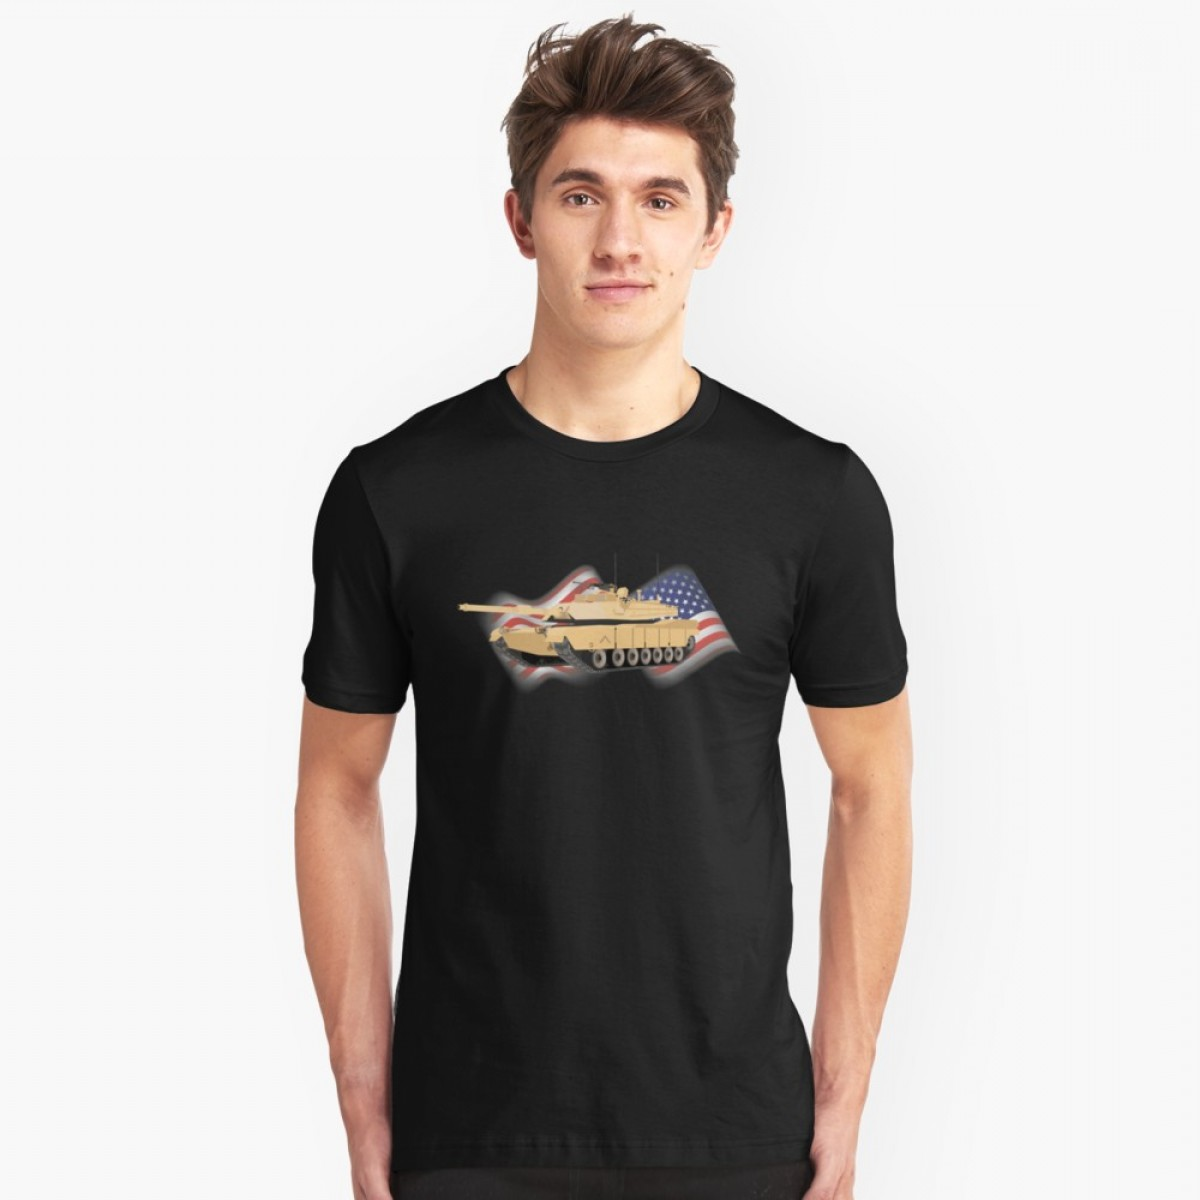 M1A1 Vector Top: Ma Abrams Tank With American Flag